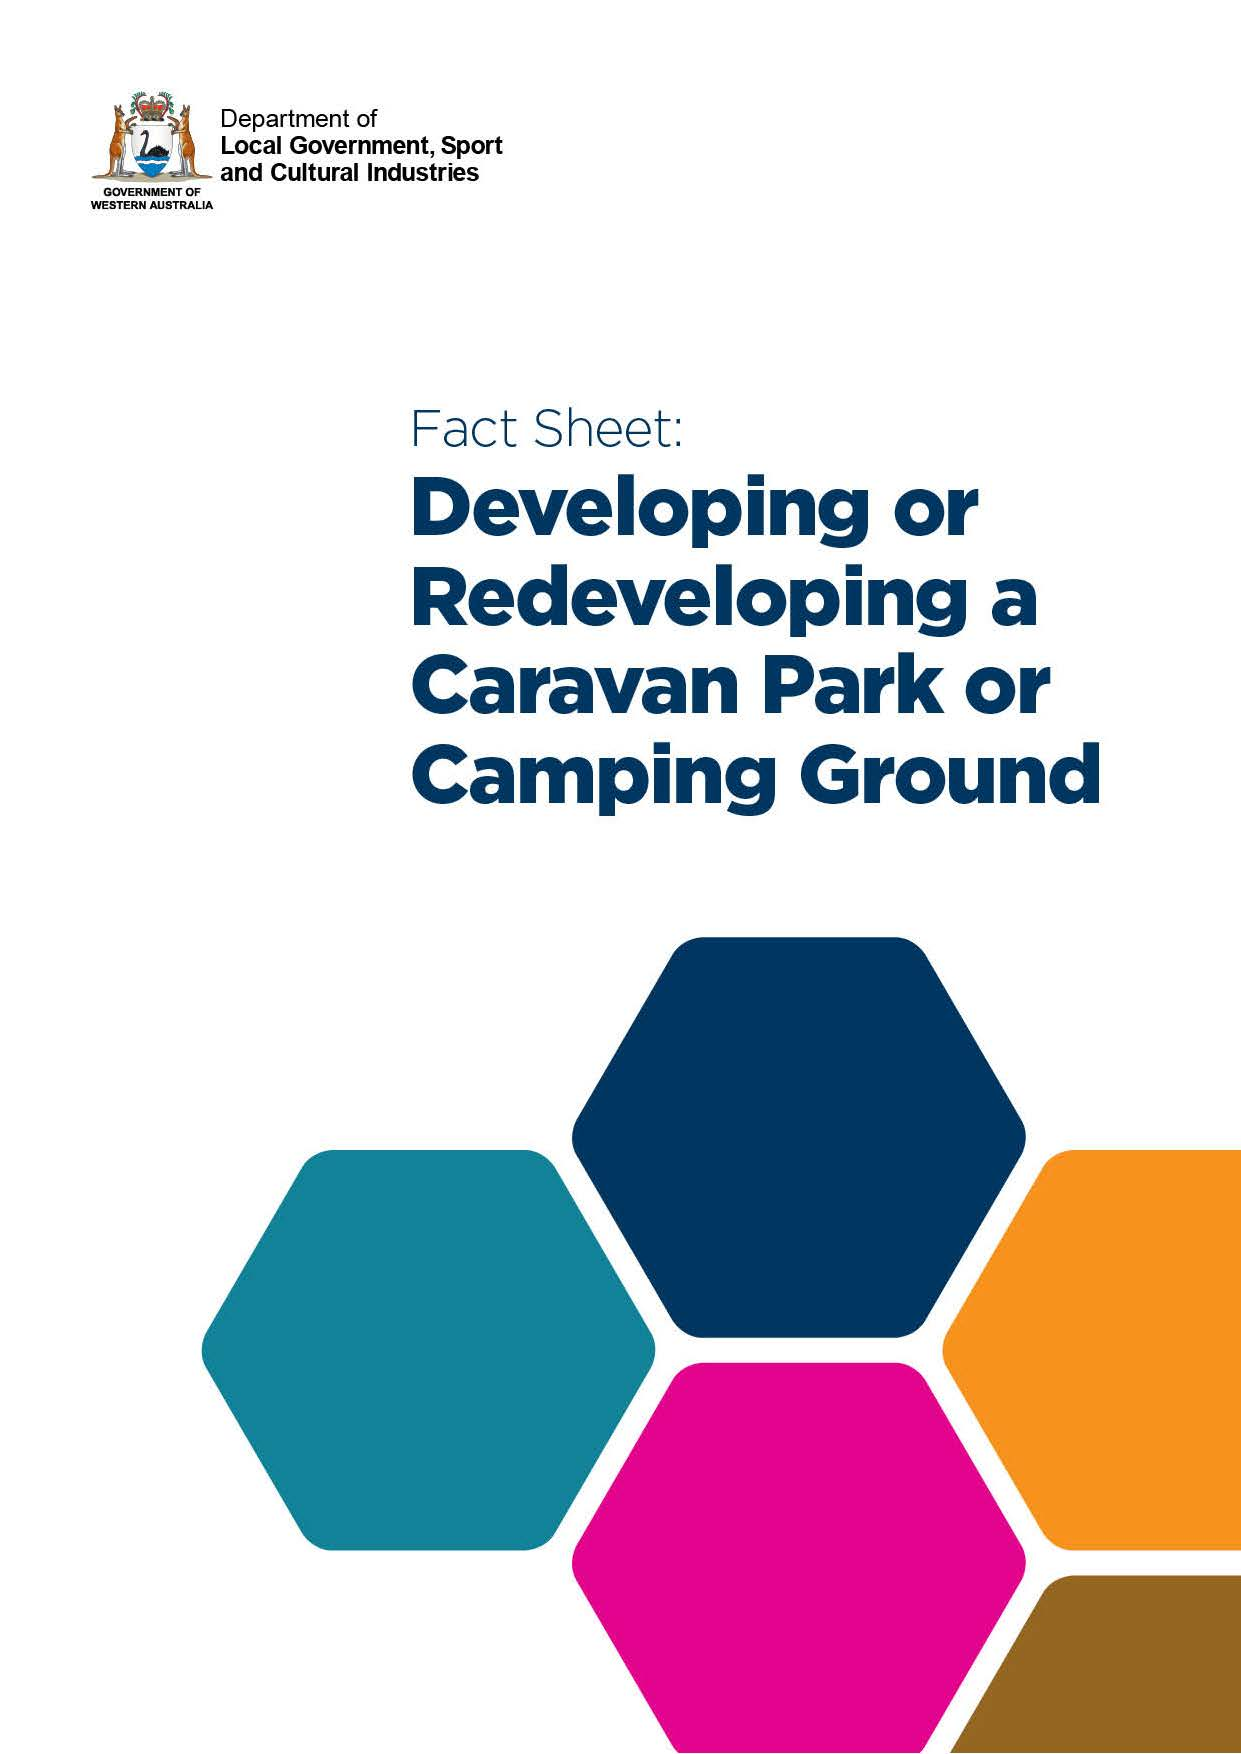 Developing or Redeveloping a Caravan Park or Camping Ground cover